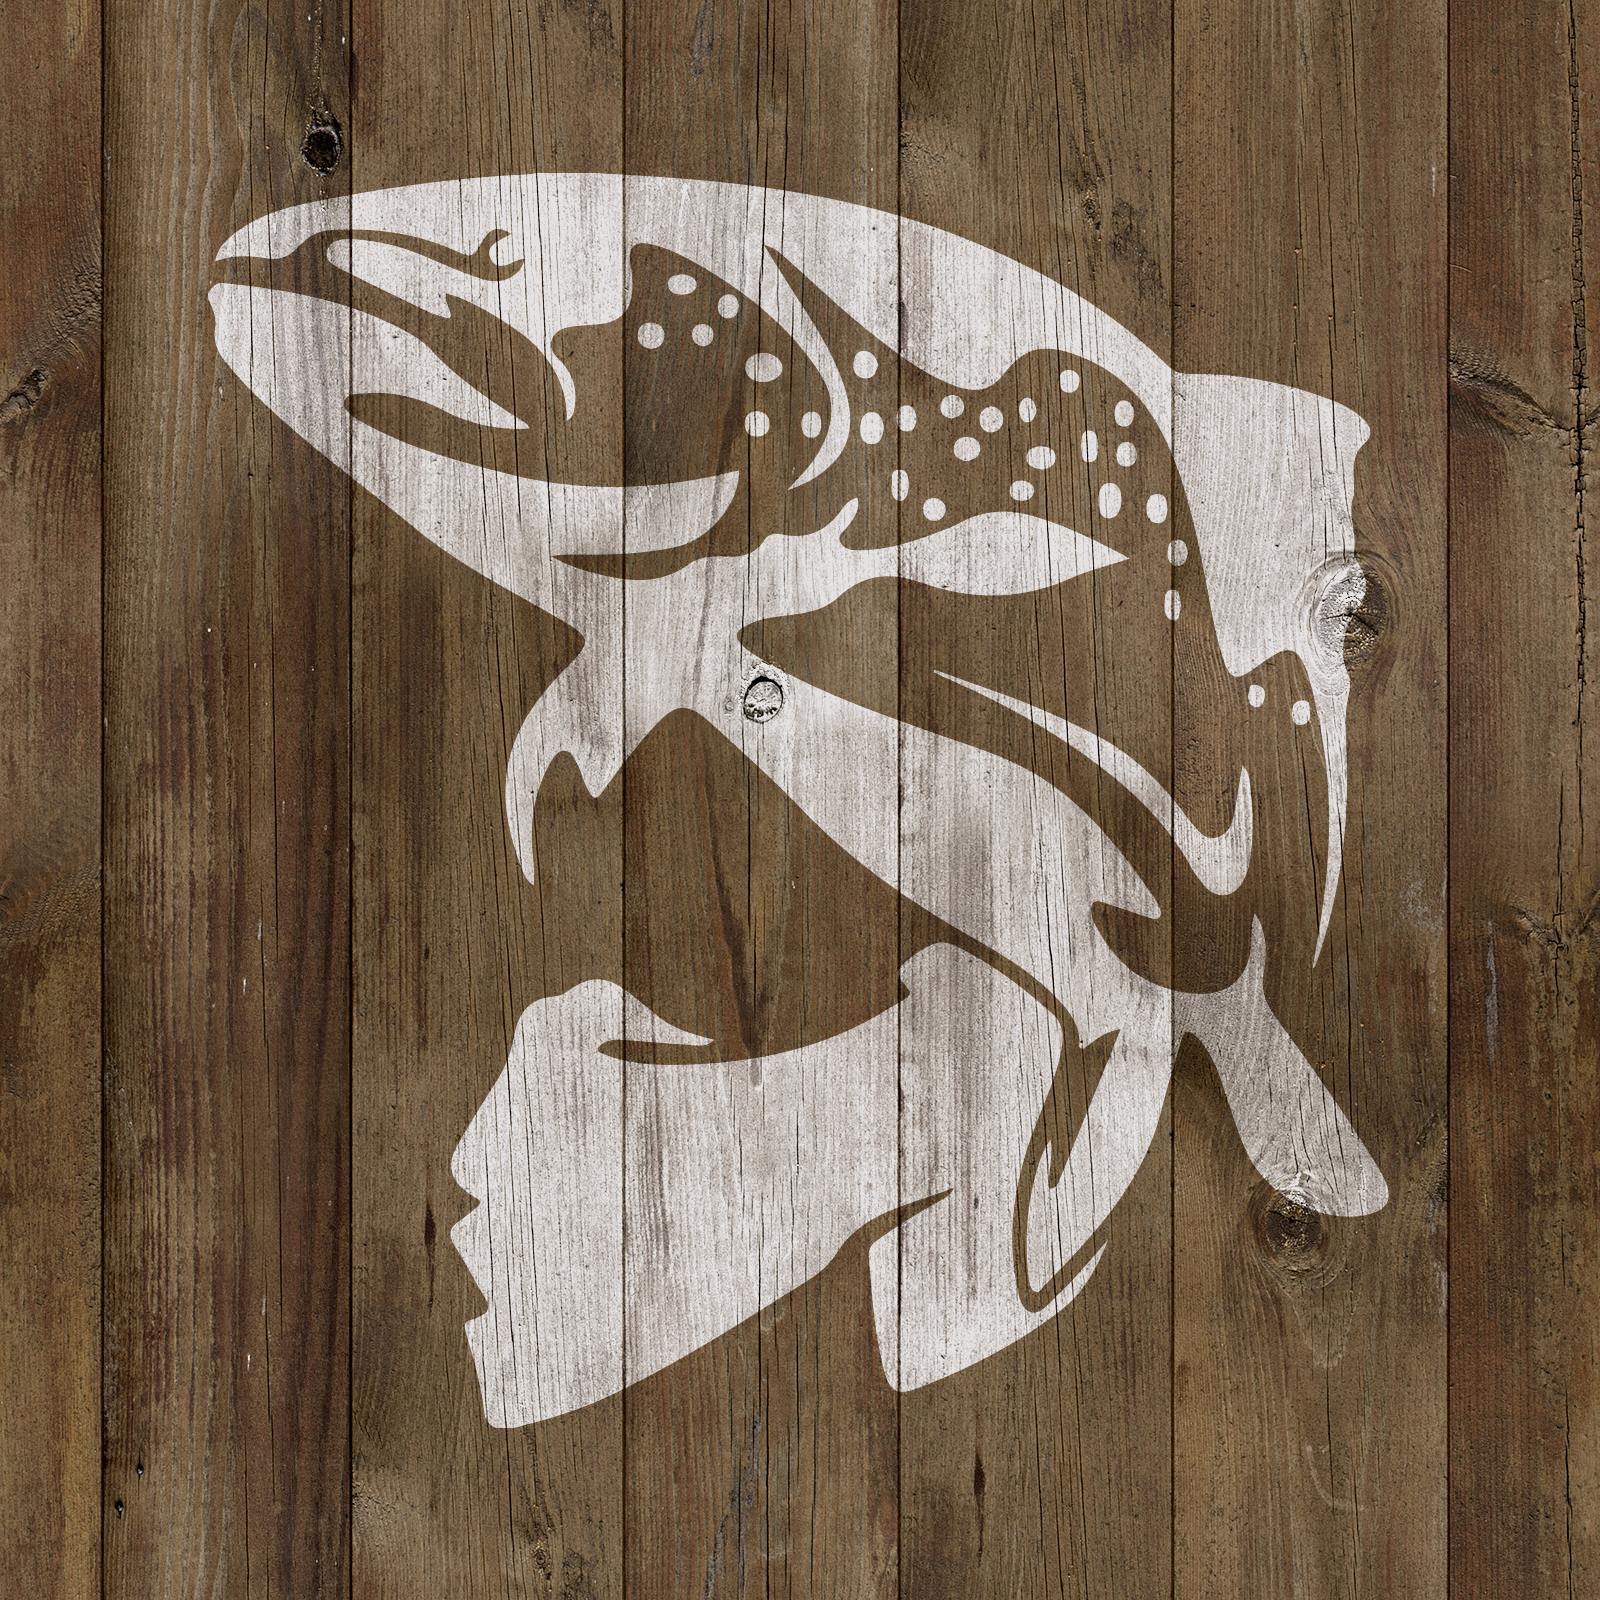 Trout Fish Stencil - Reusable Stencils of Fish in Multiple Sizes